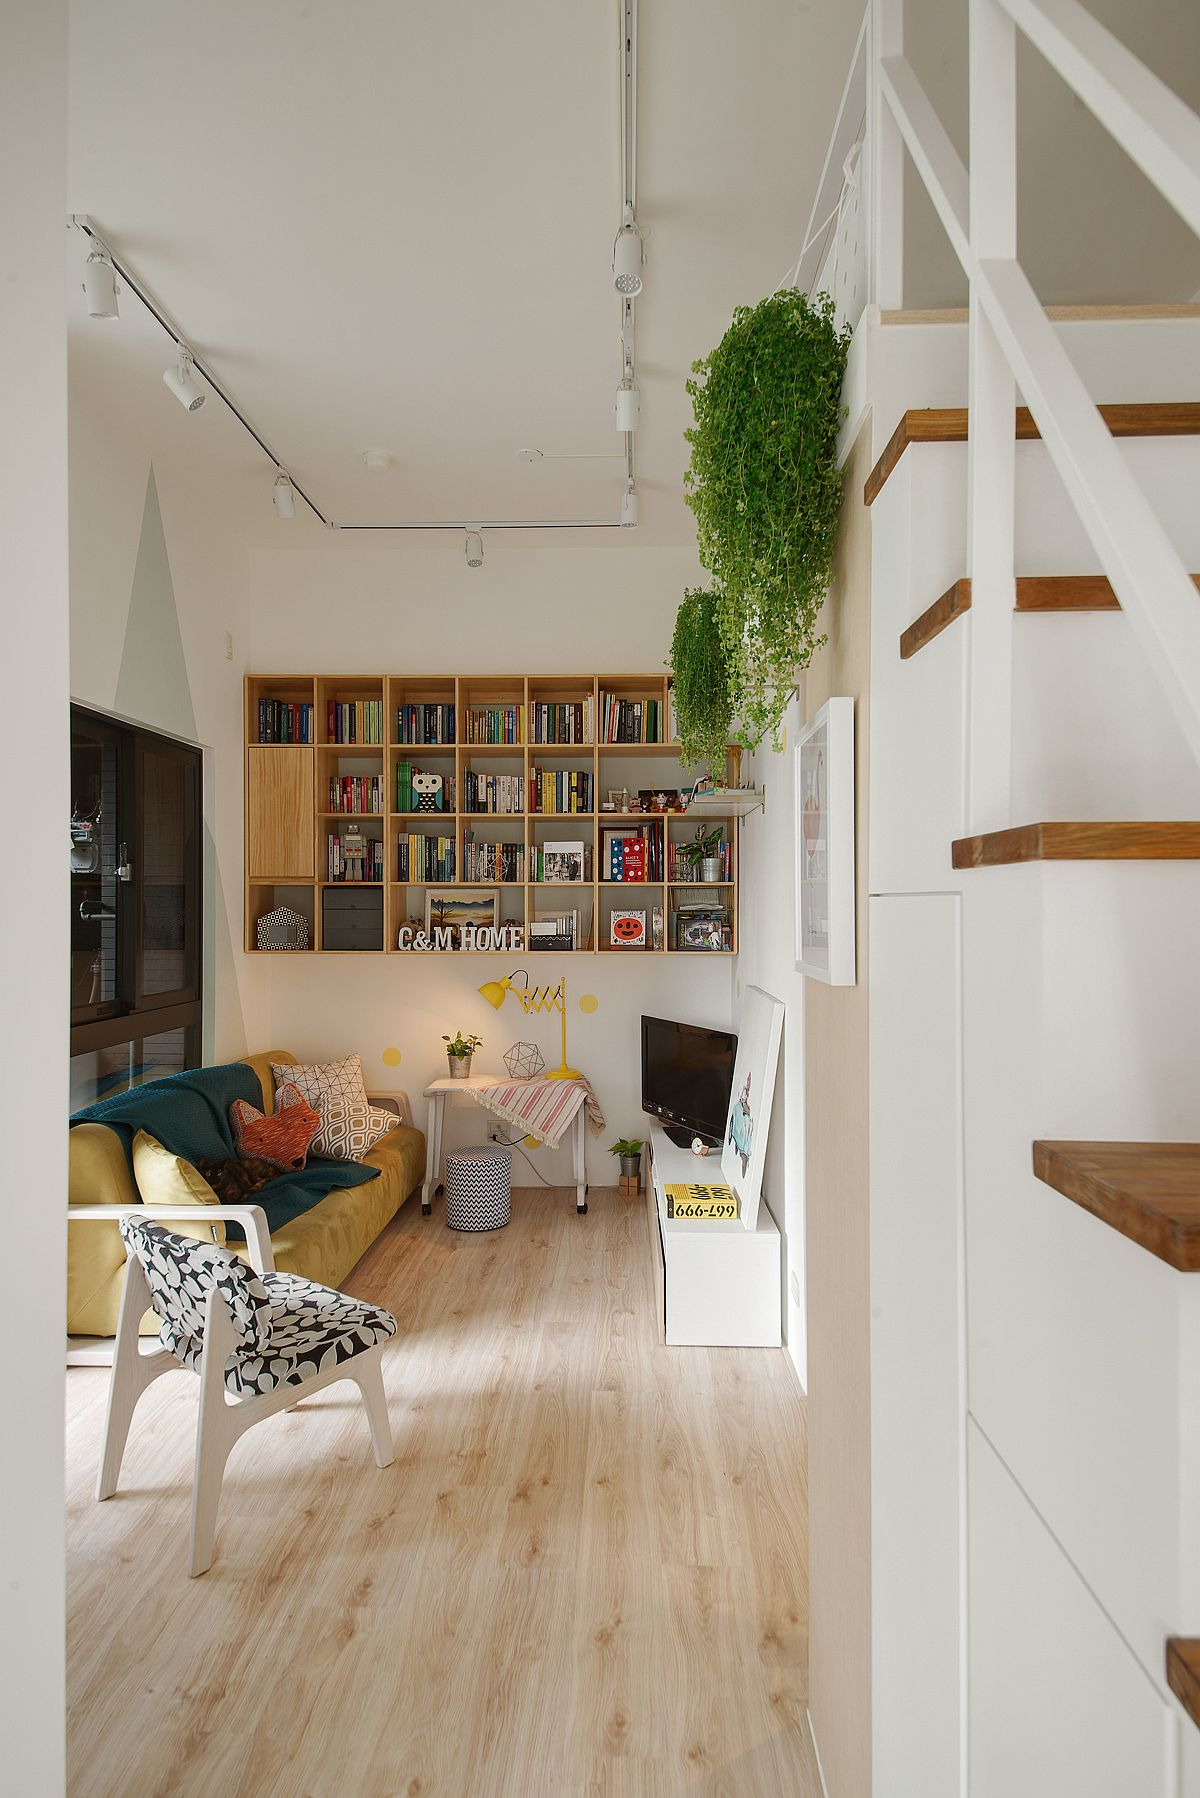 Custom-wooden-shelf-for-the-small-urban-apartment-is-a-great-space-saver